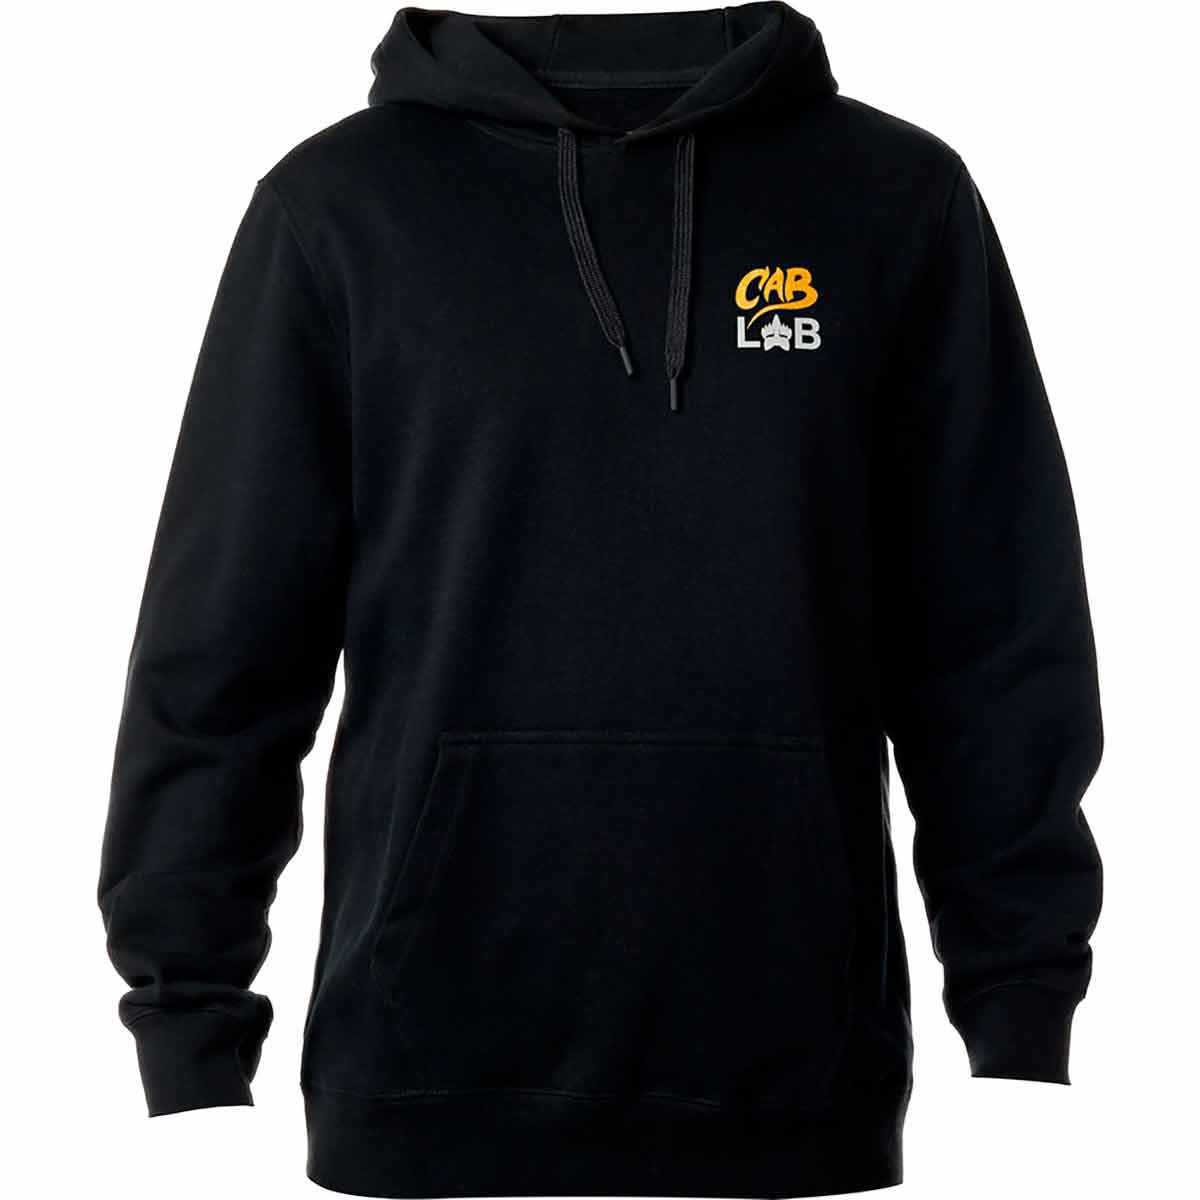 Shift Racing Caballero x Lab Men's Hoody Pullover Sweatshirts-20879